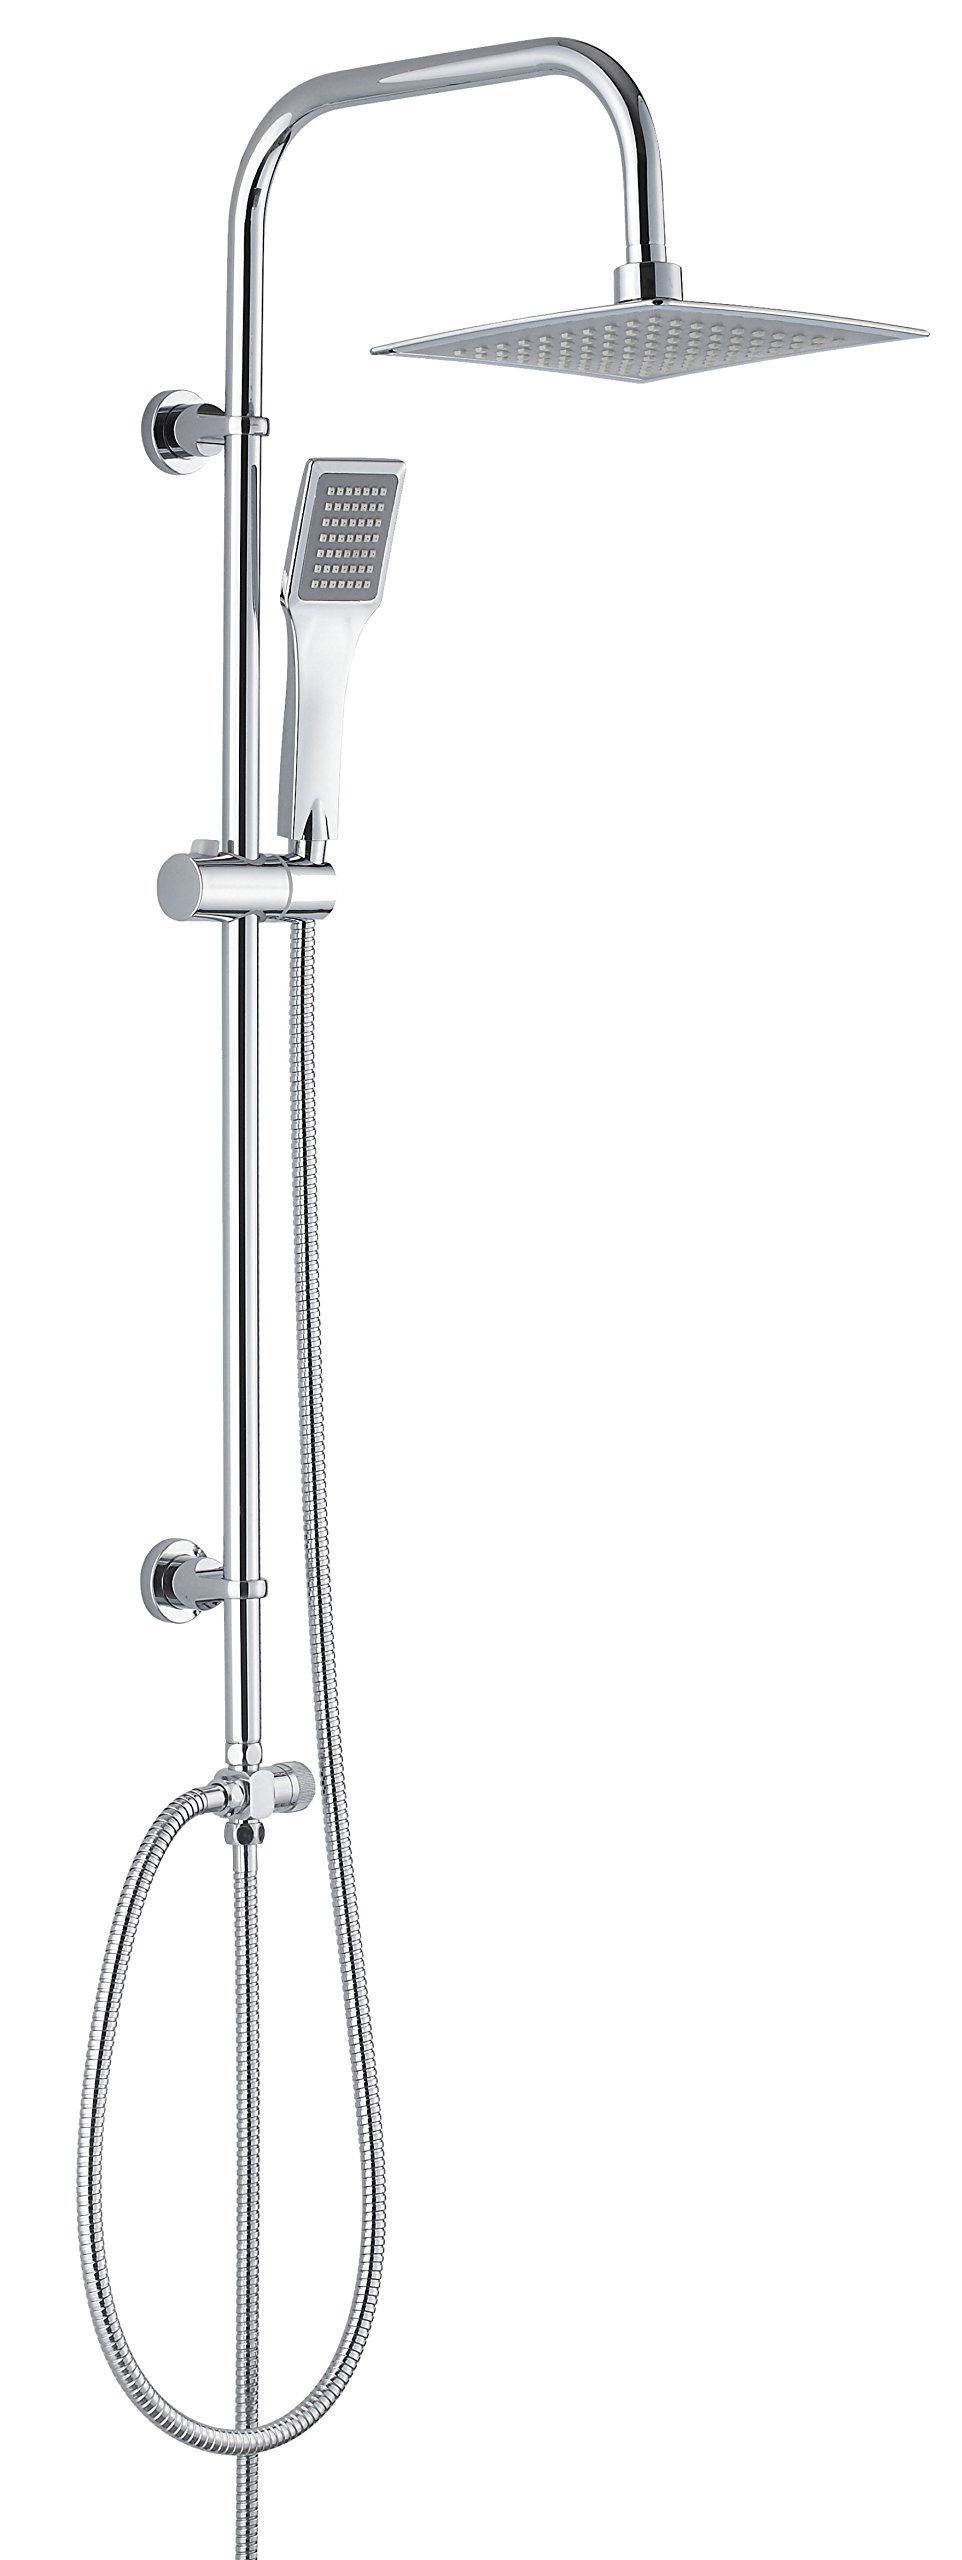 DEANTE Neo Vero Shower Pole - Plastic, Chrome, 37 x 99 cm